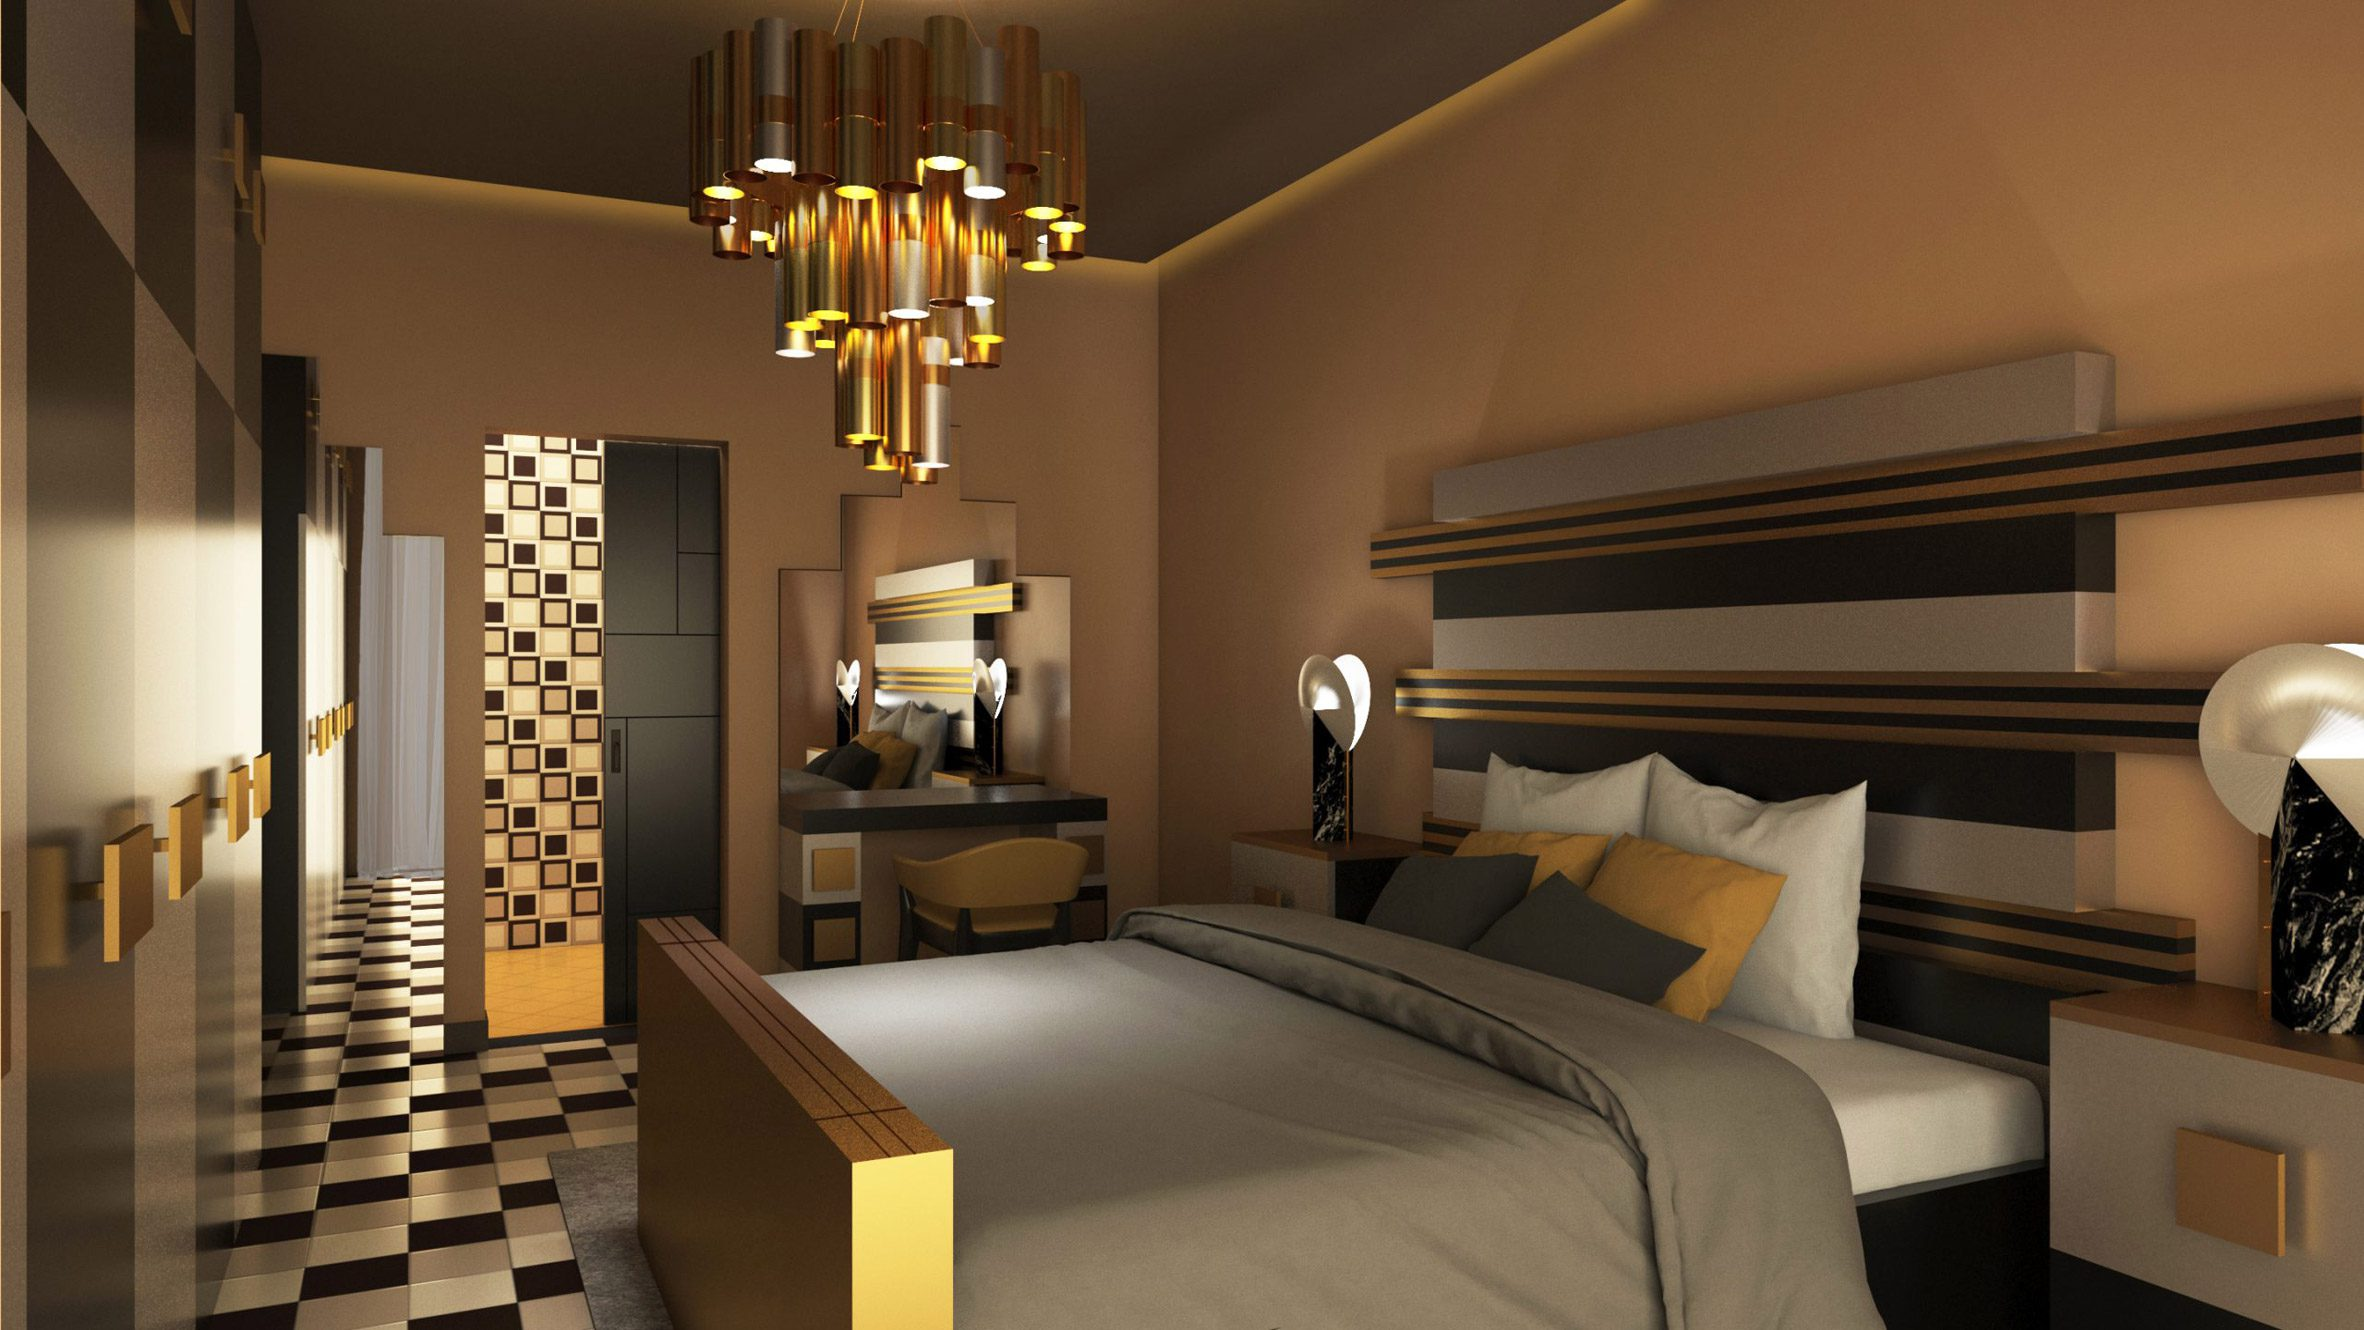 A bedroom with a gold and grey aesthetic